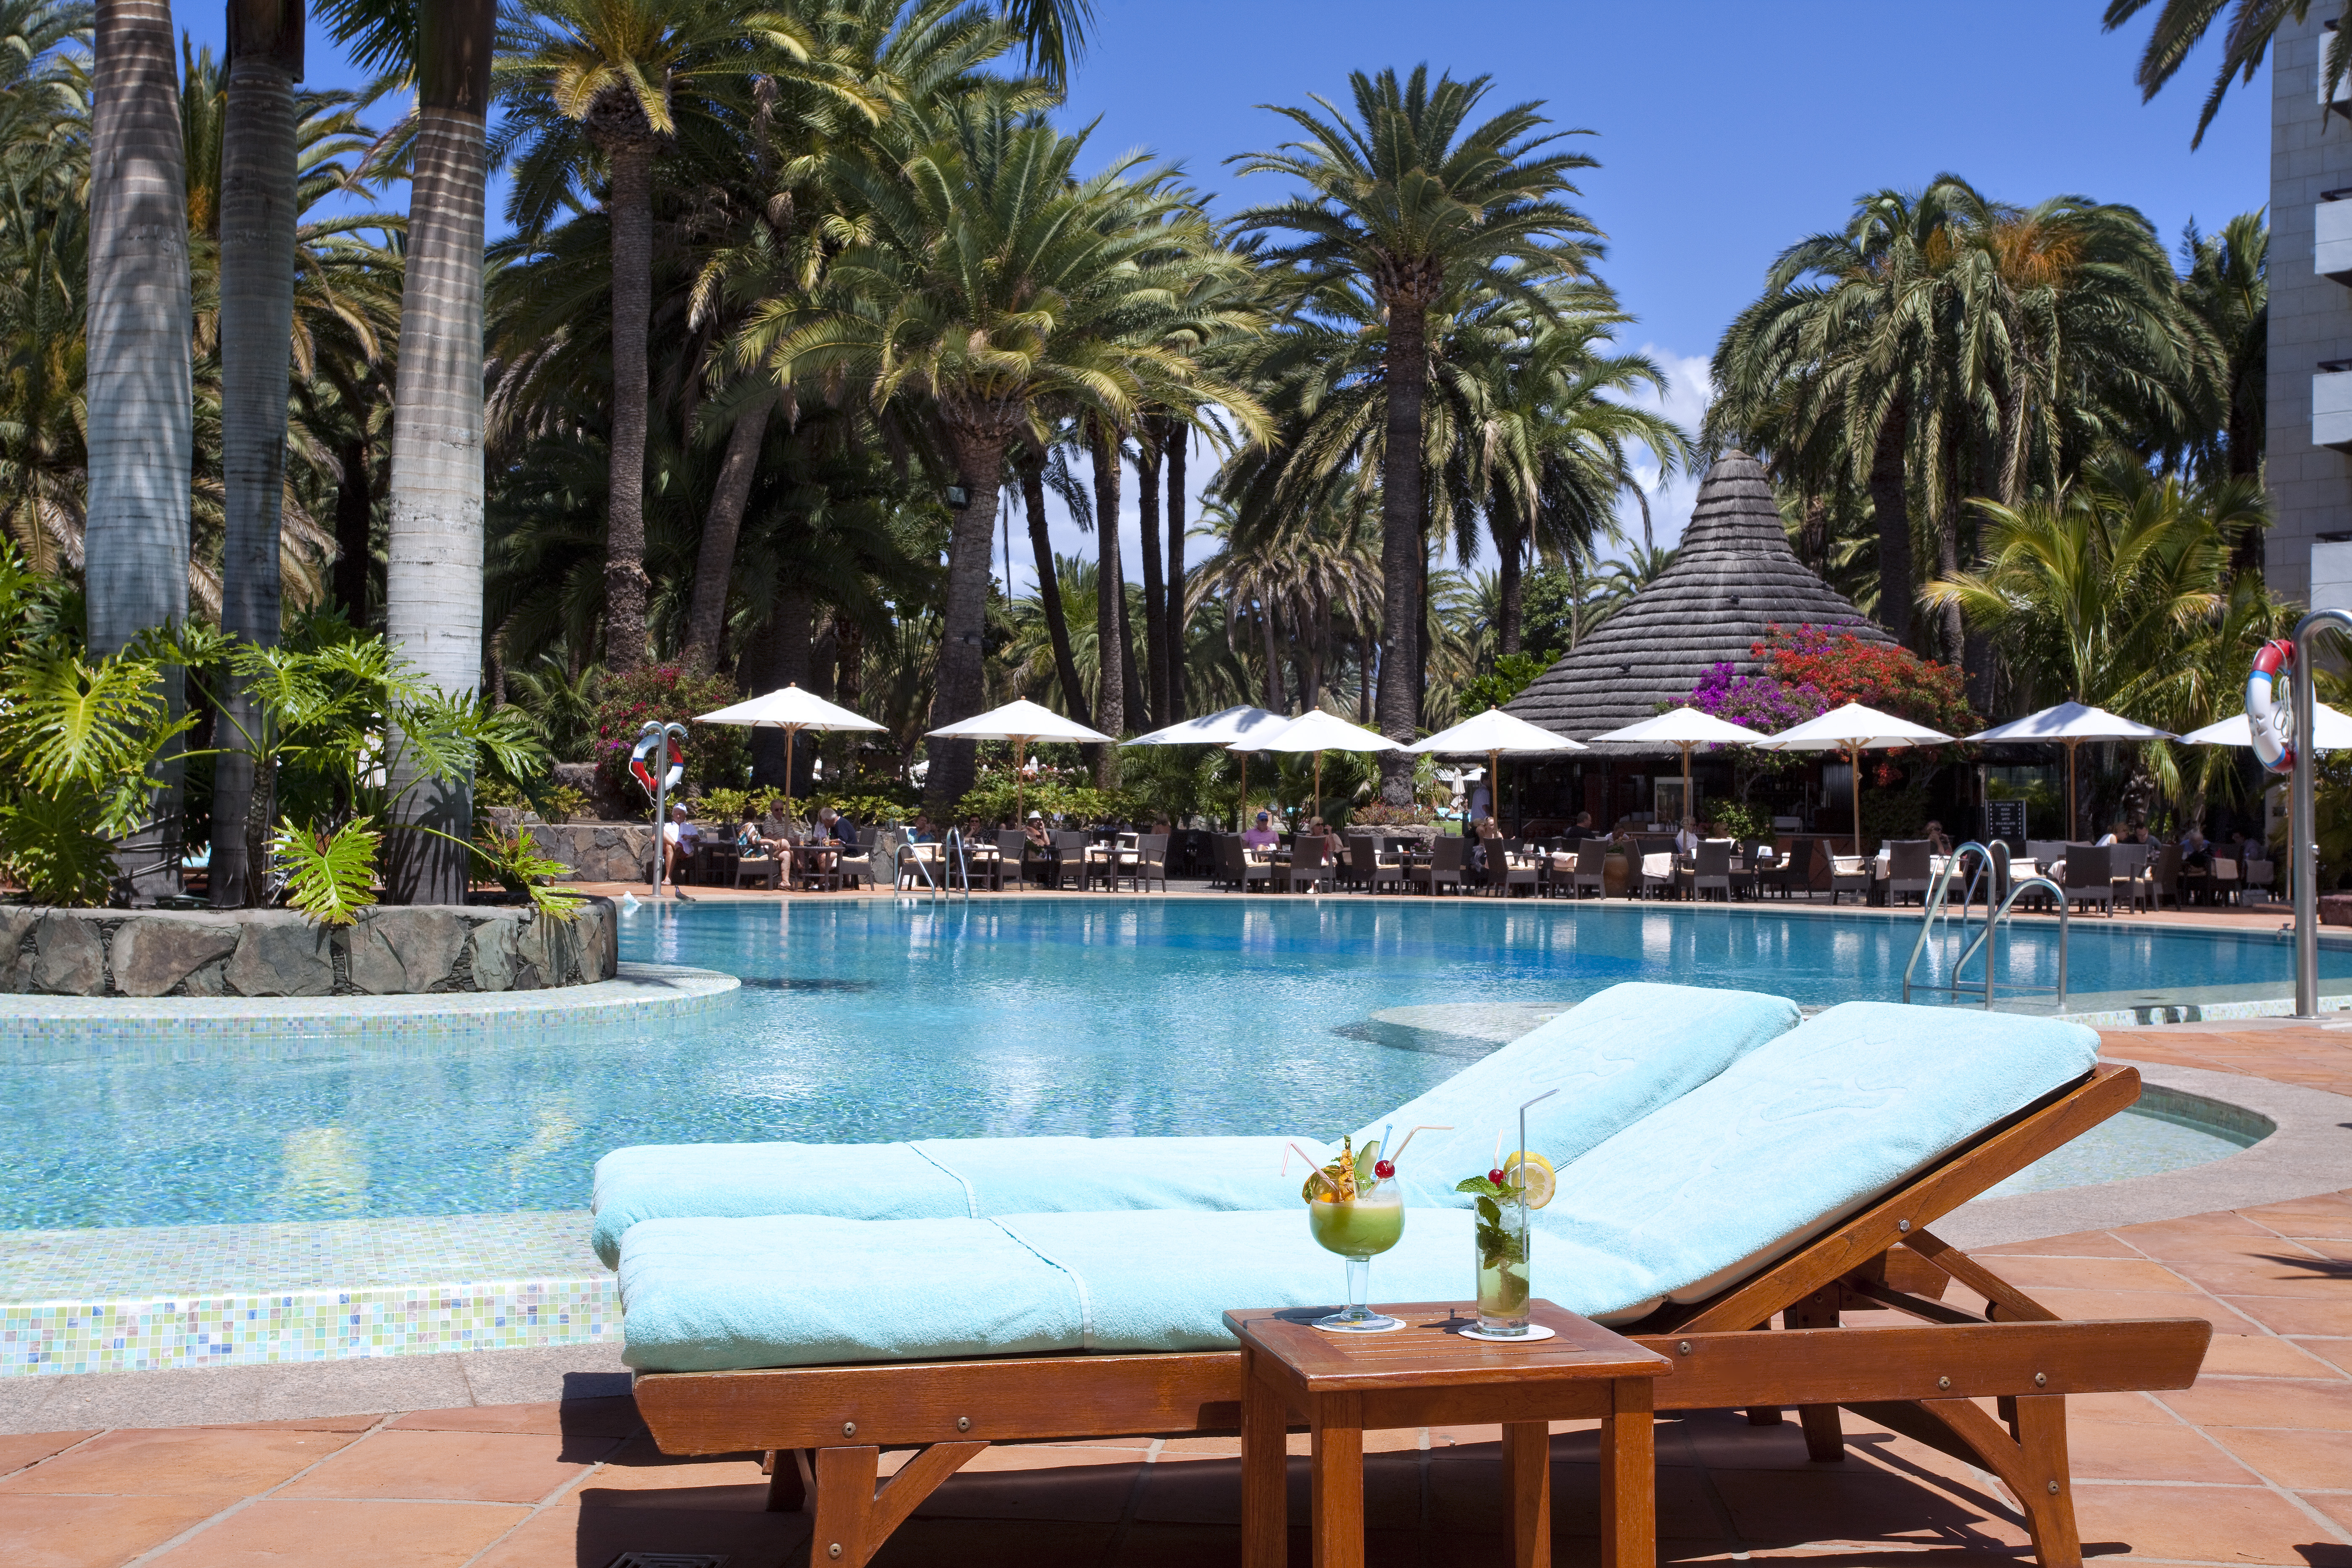 Welk Fletcher Hotel Heeft Zwembad Travel Relaxing On Gran Canaria Part I